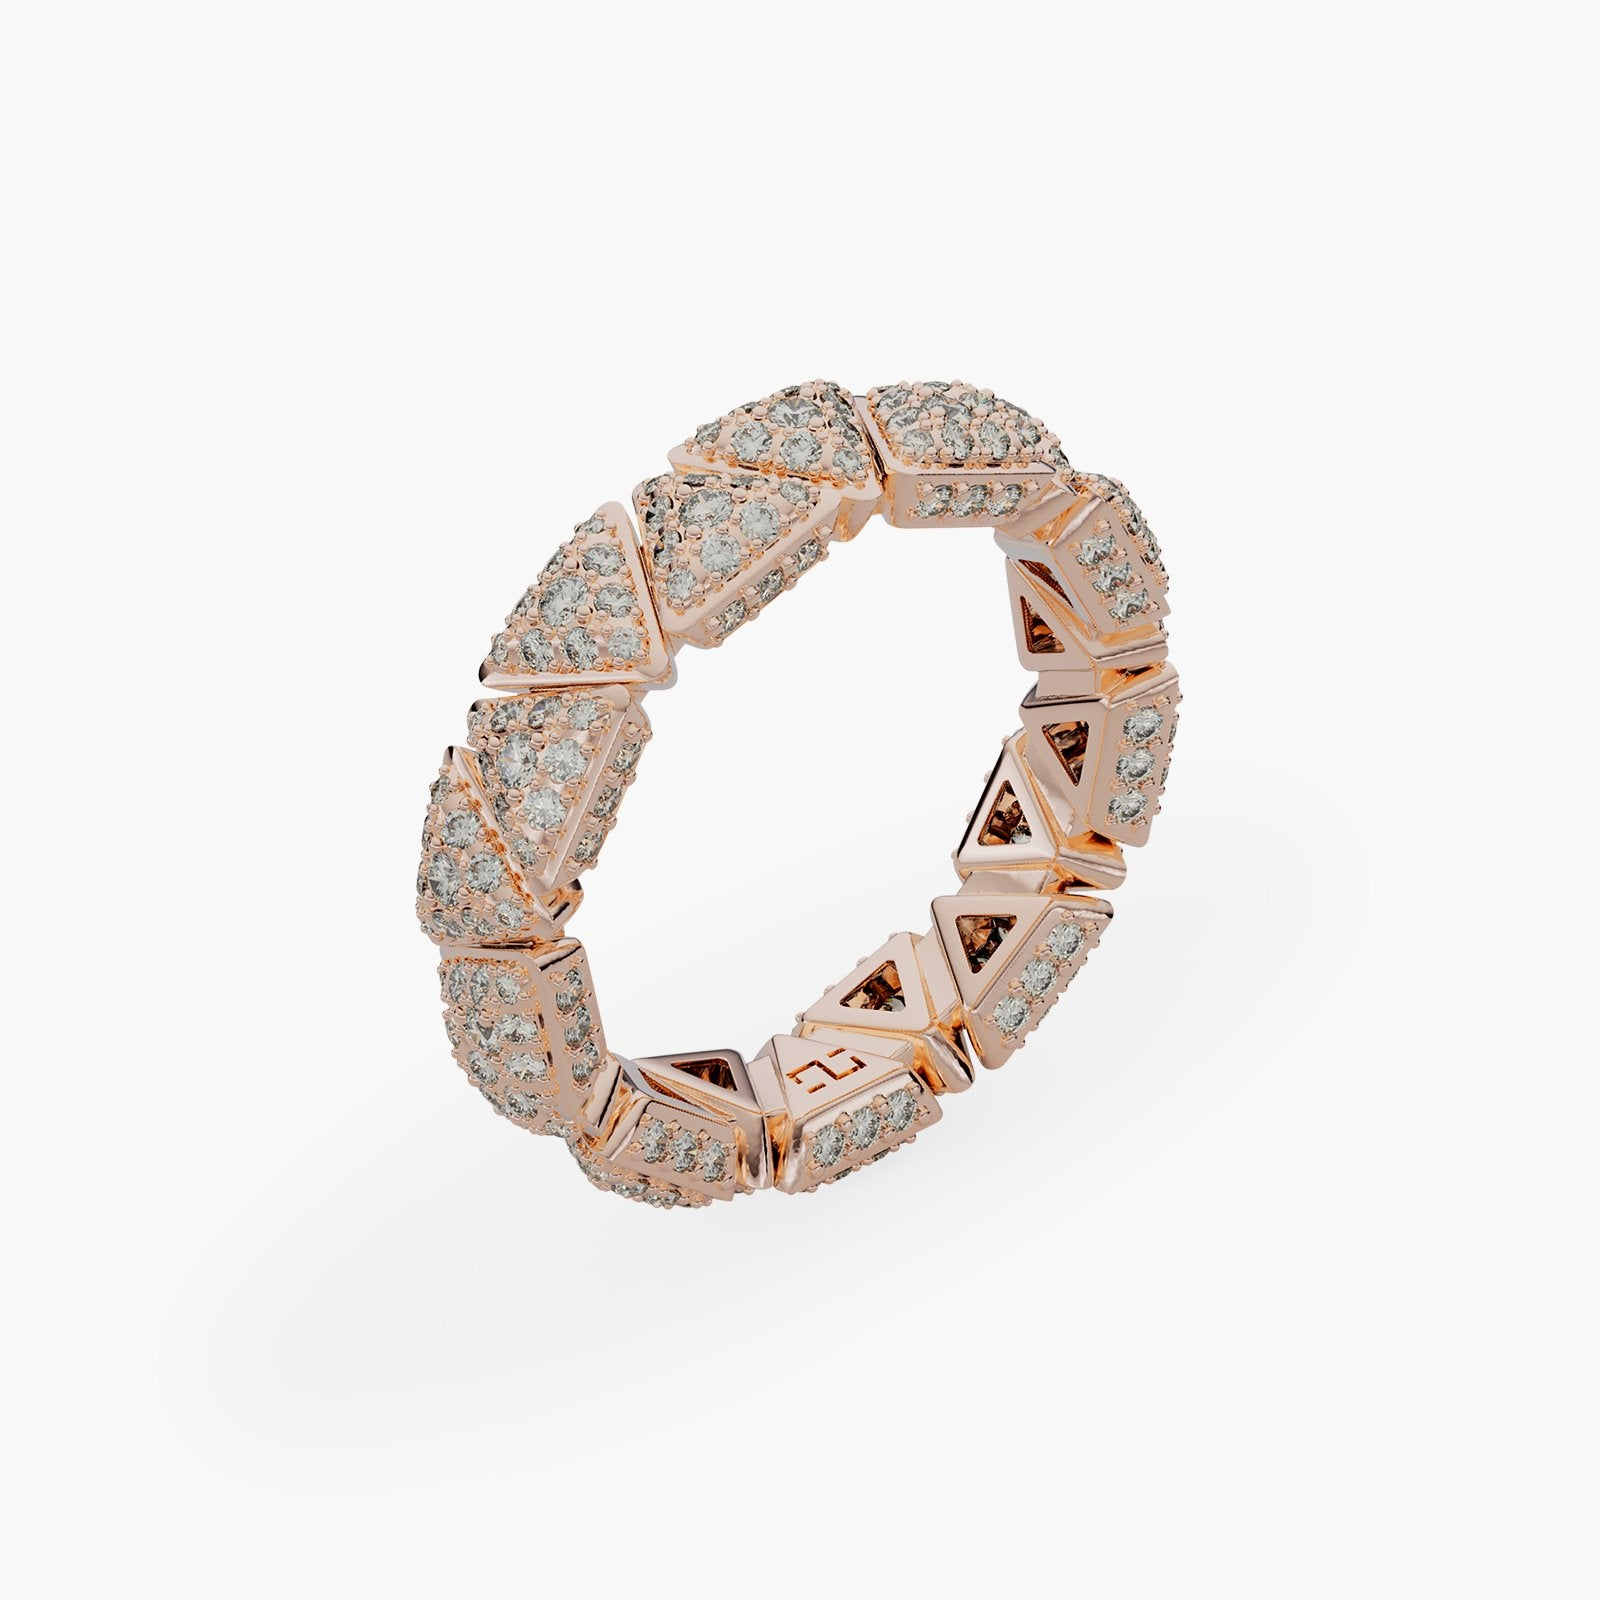 Ring Engagement Anniversary Rose Gold Full Diamonds Pavé